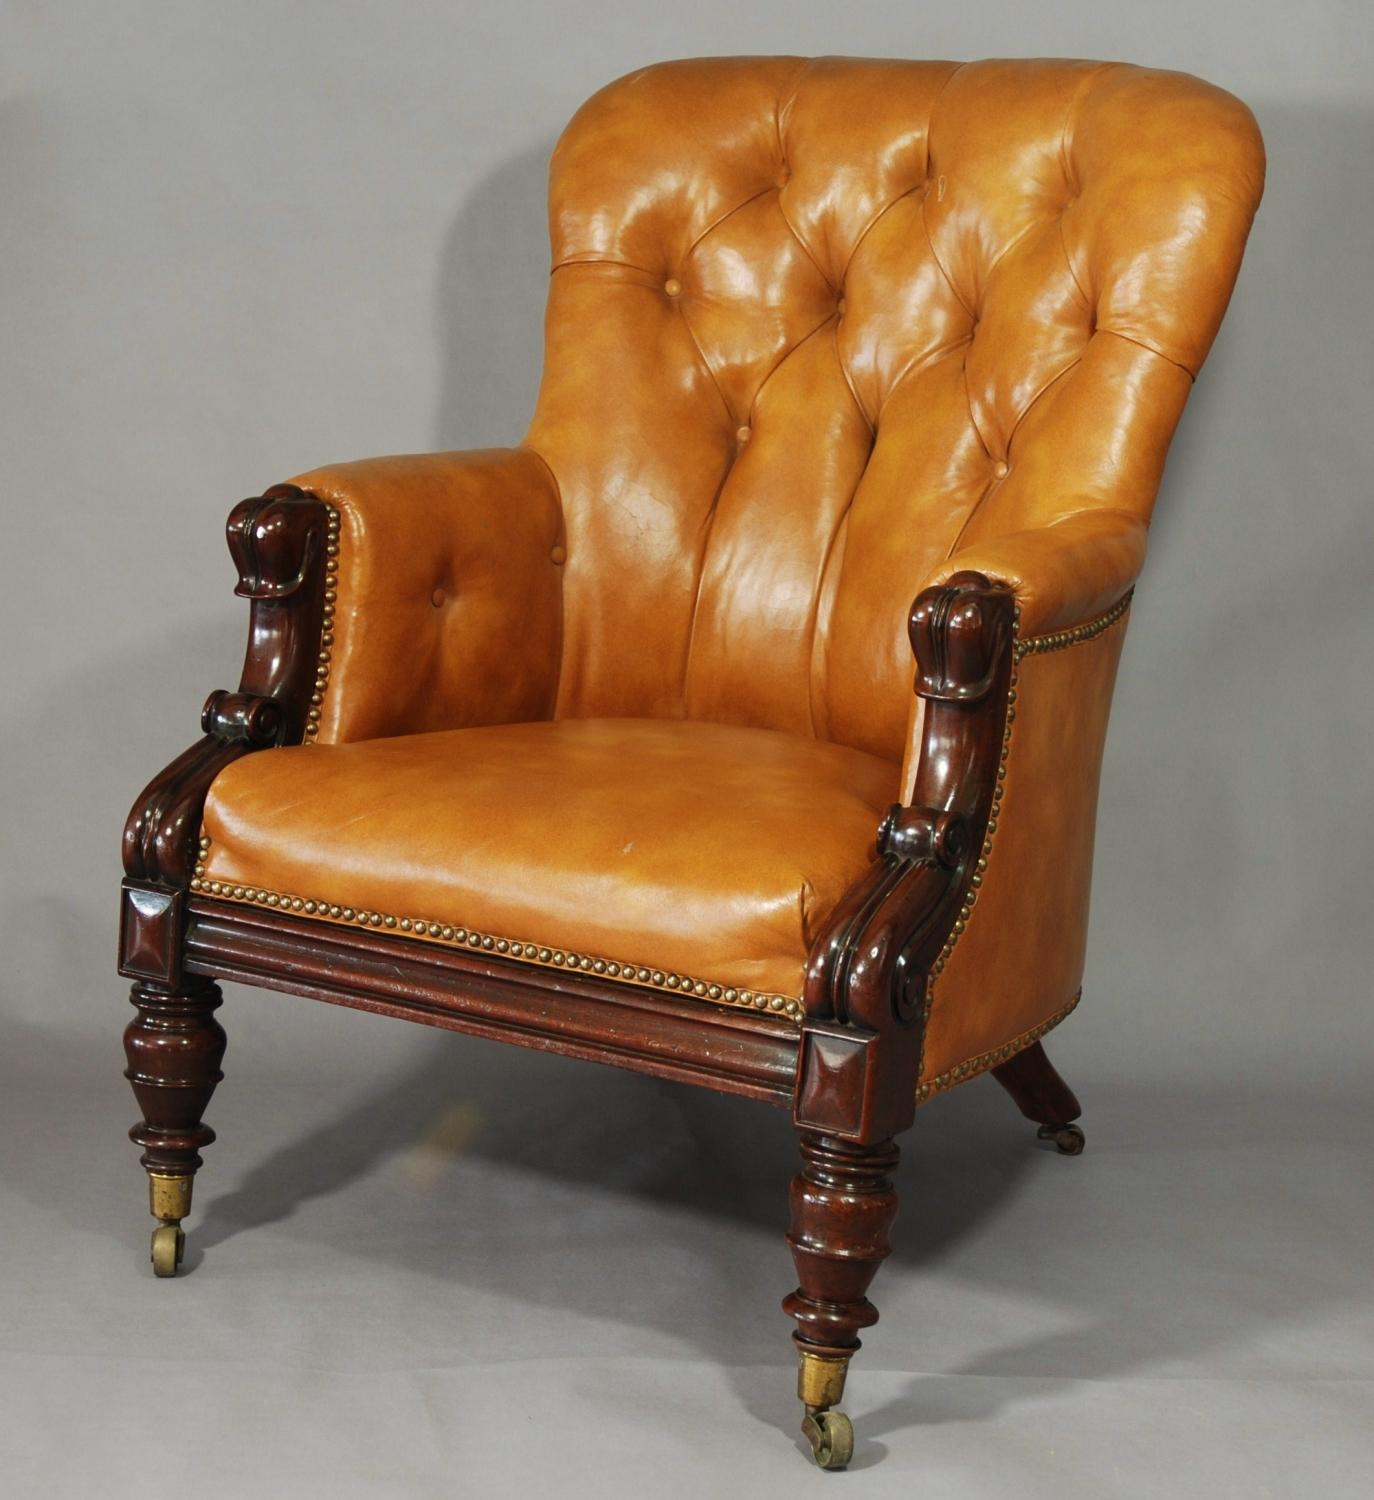 19th century deep buttoned armchair